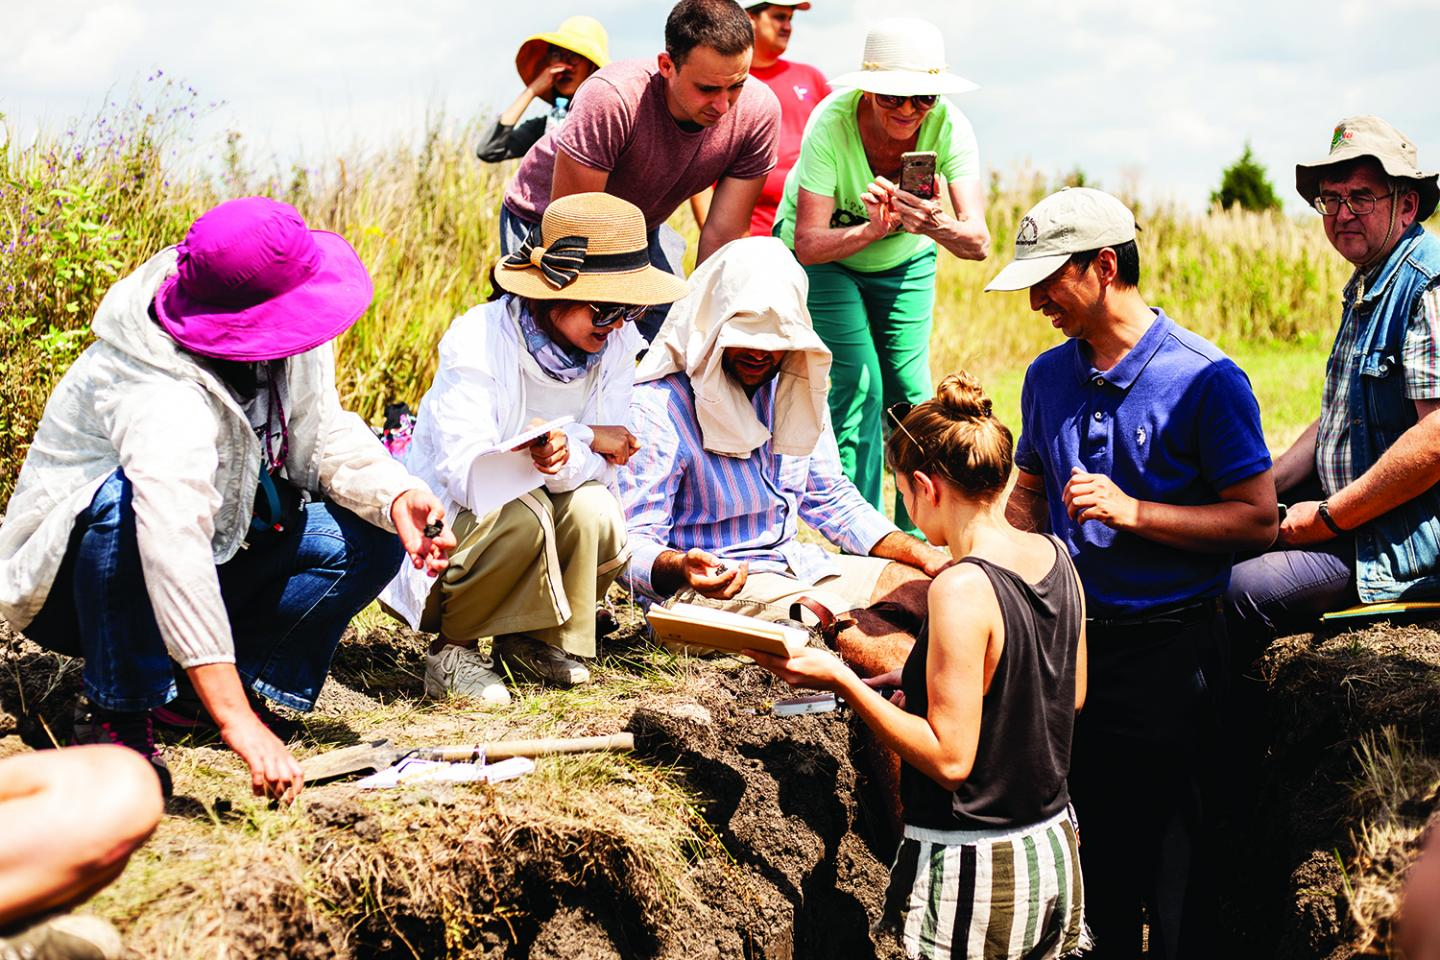 RUDN University Summer School of Soil Sciences Covered 5 Climatic Zones from the Barents Sea to the Azov Sea